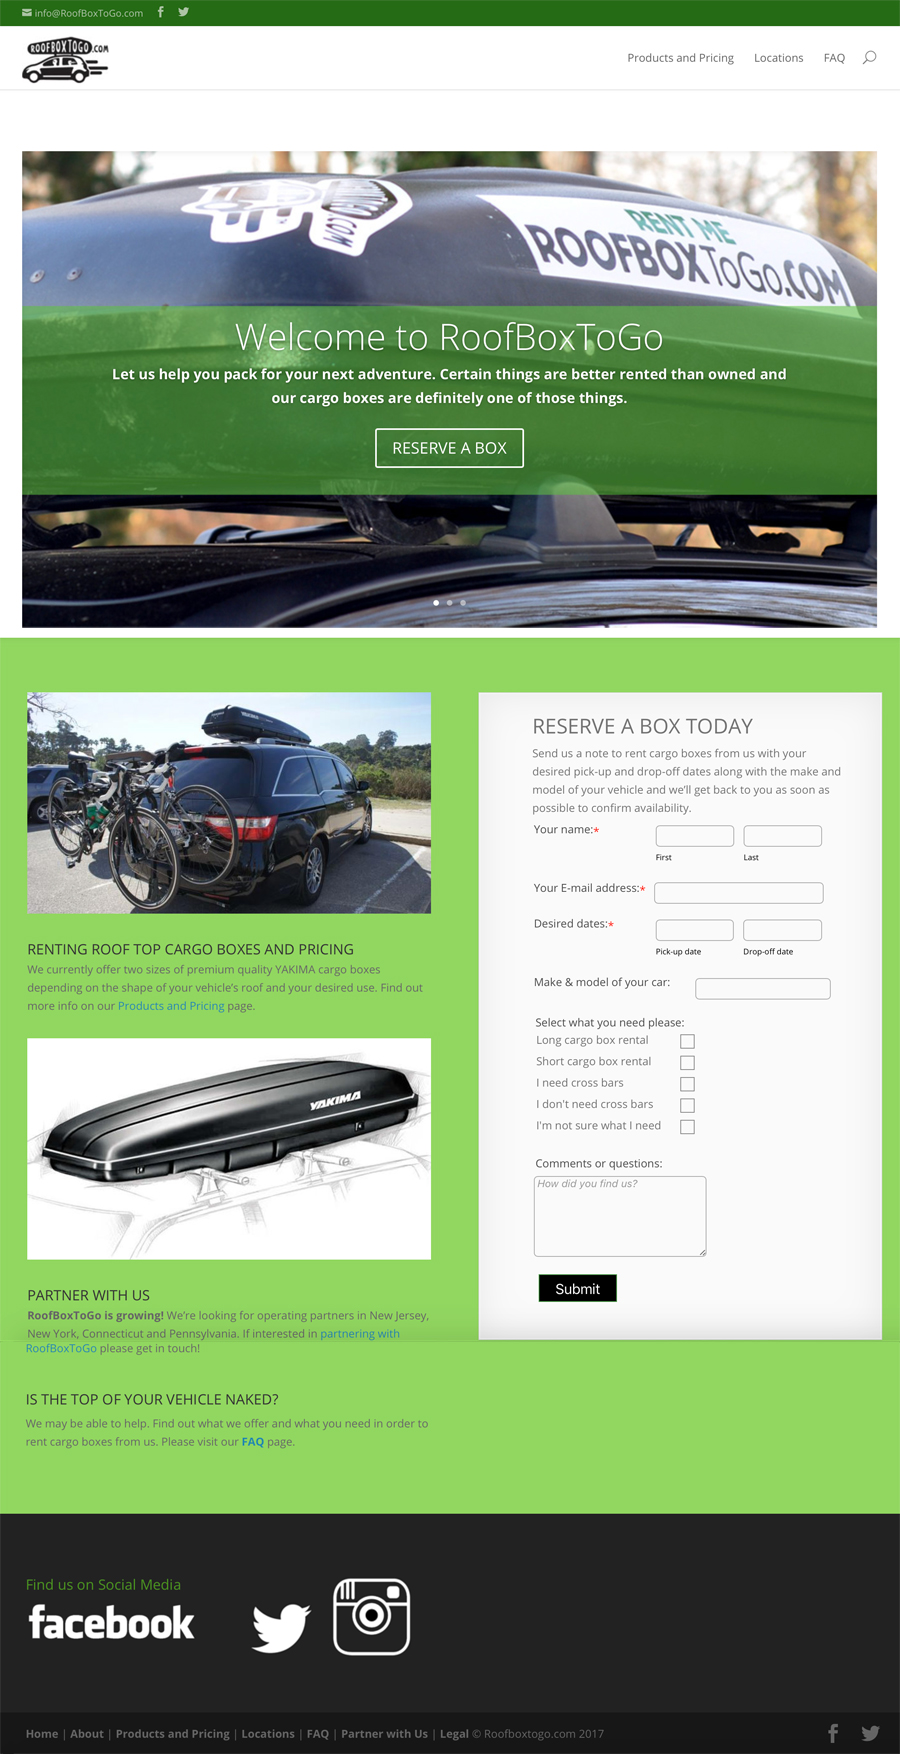 Digital Creative Professional Business Services Web Design by VLH